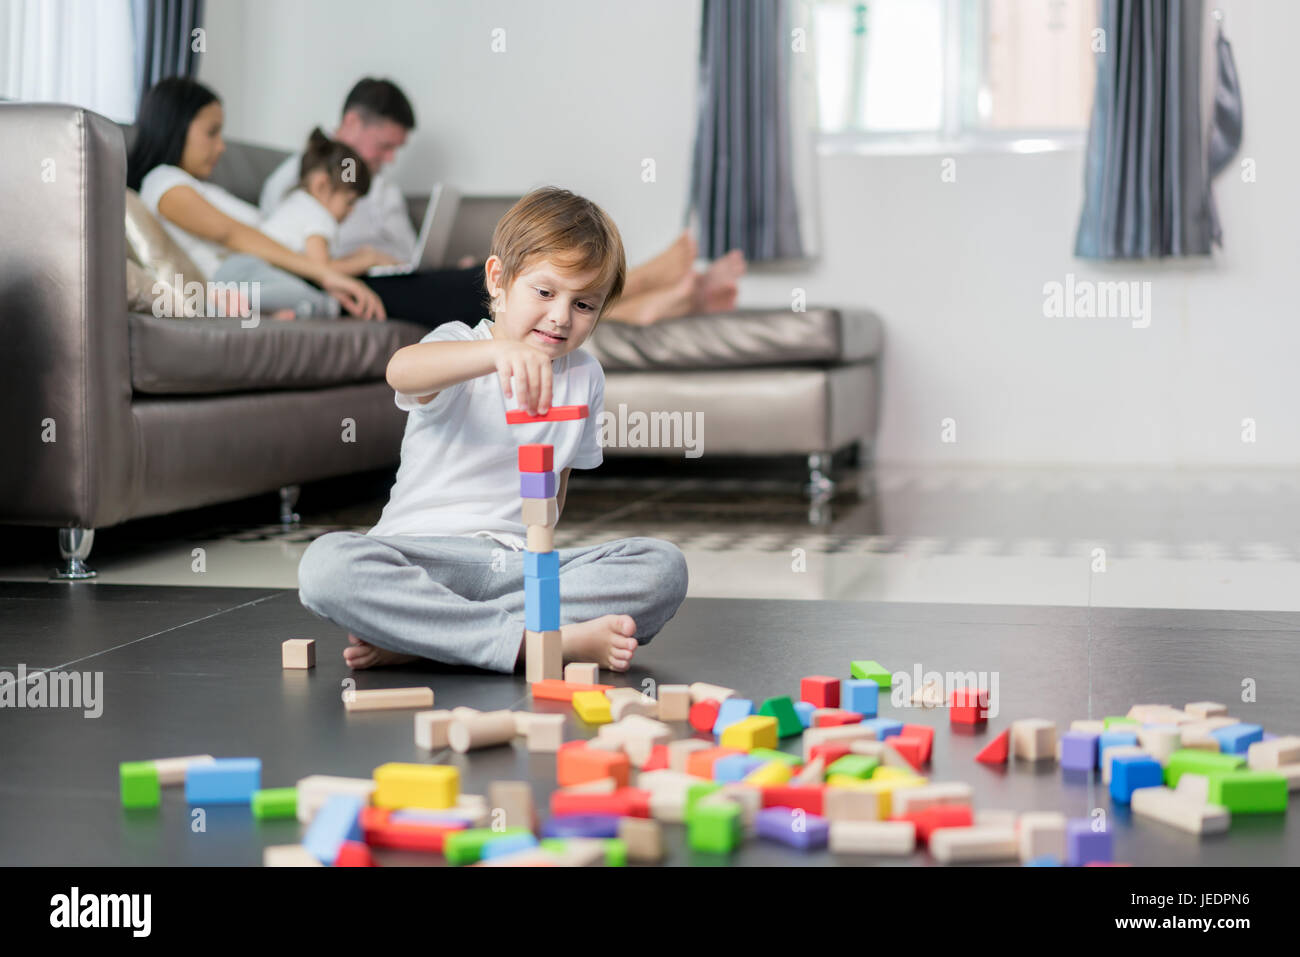 Asian boy playing wood toy in living room with father, mother and daughter in background. Happy family. Stock Photo